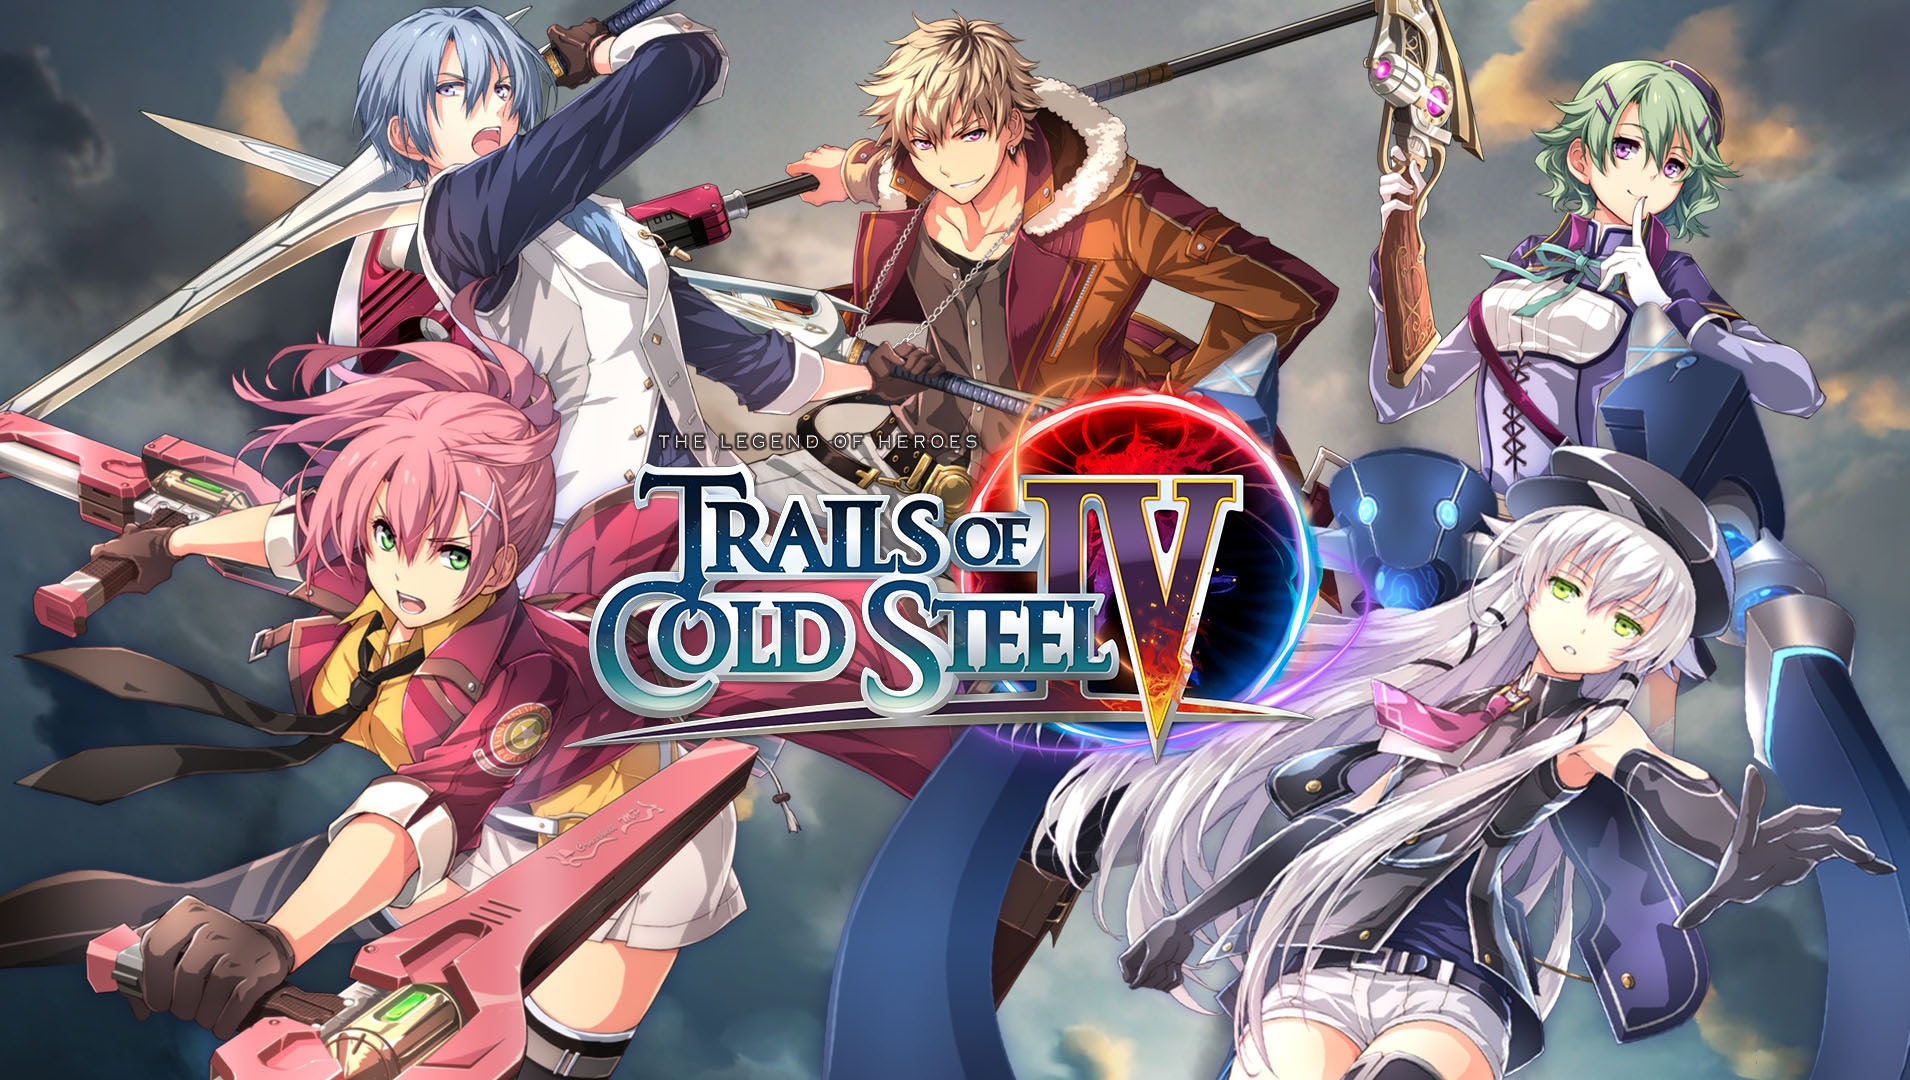 The Legend of Heroes: Trails of Cold Steel IV launches for Switch in April